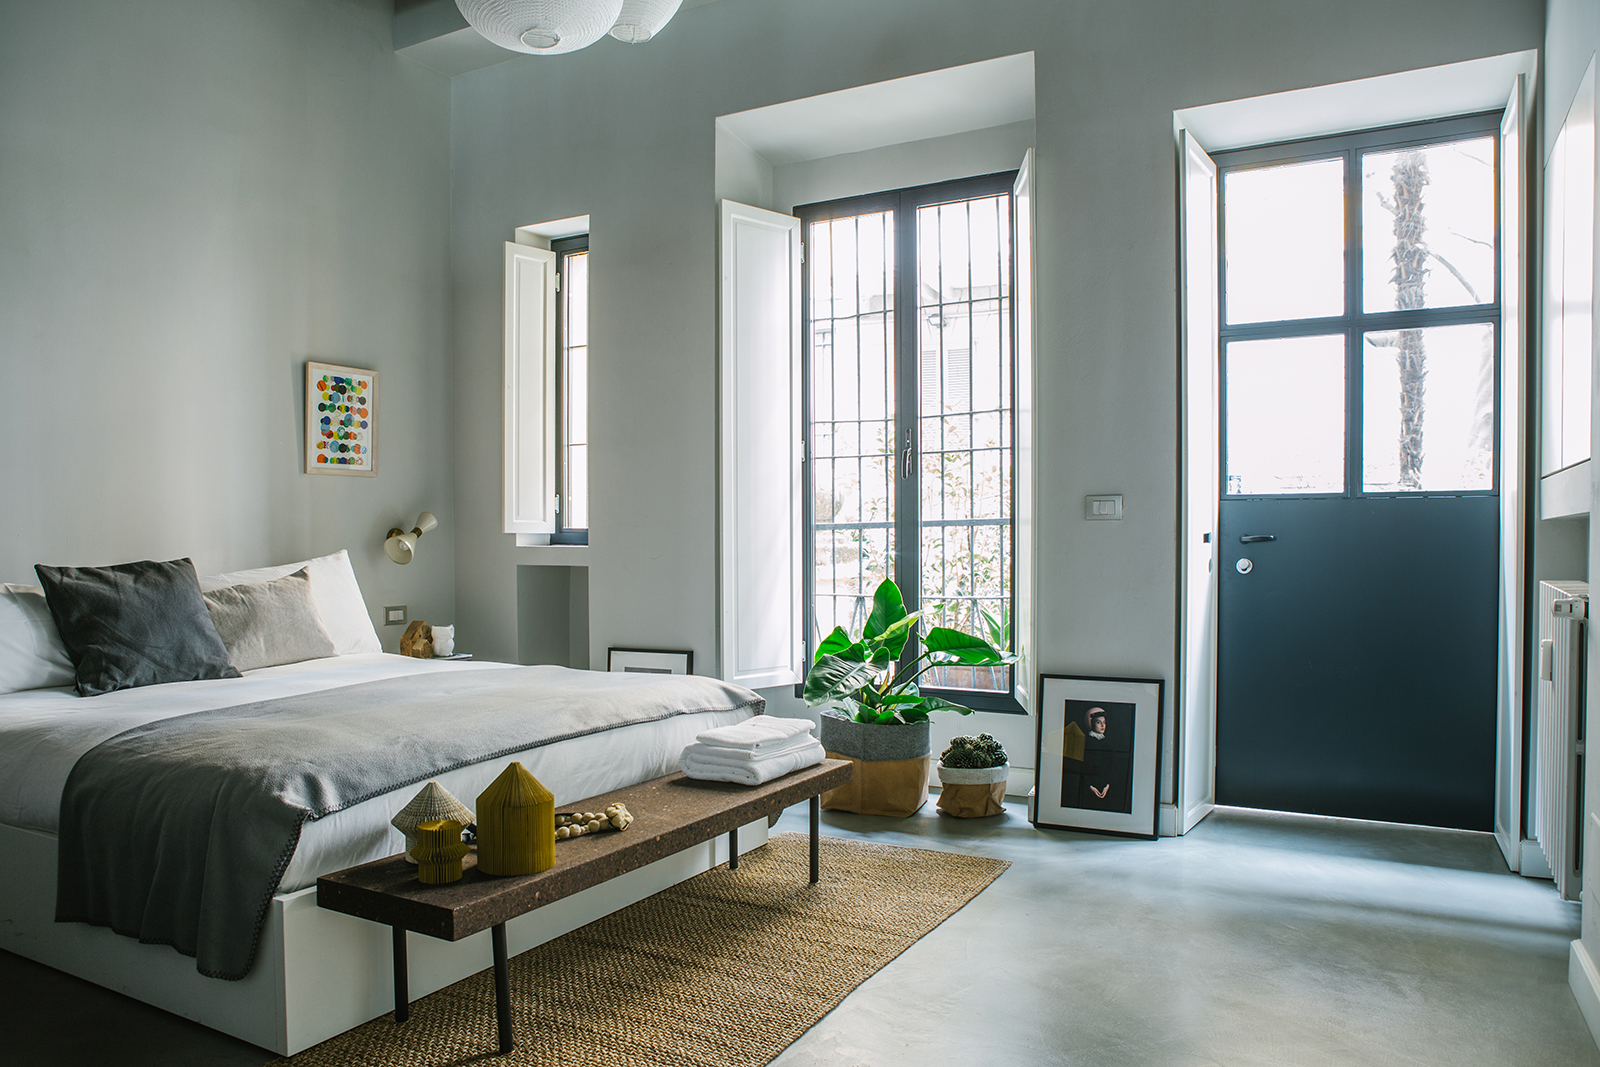 5 of the best Milan apartments you can rent